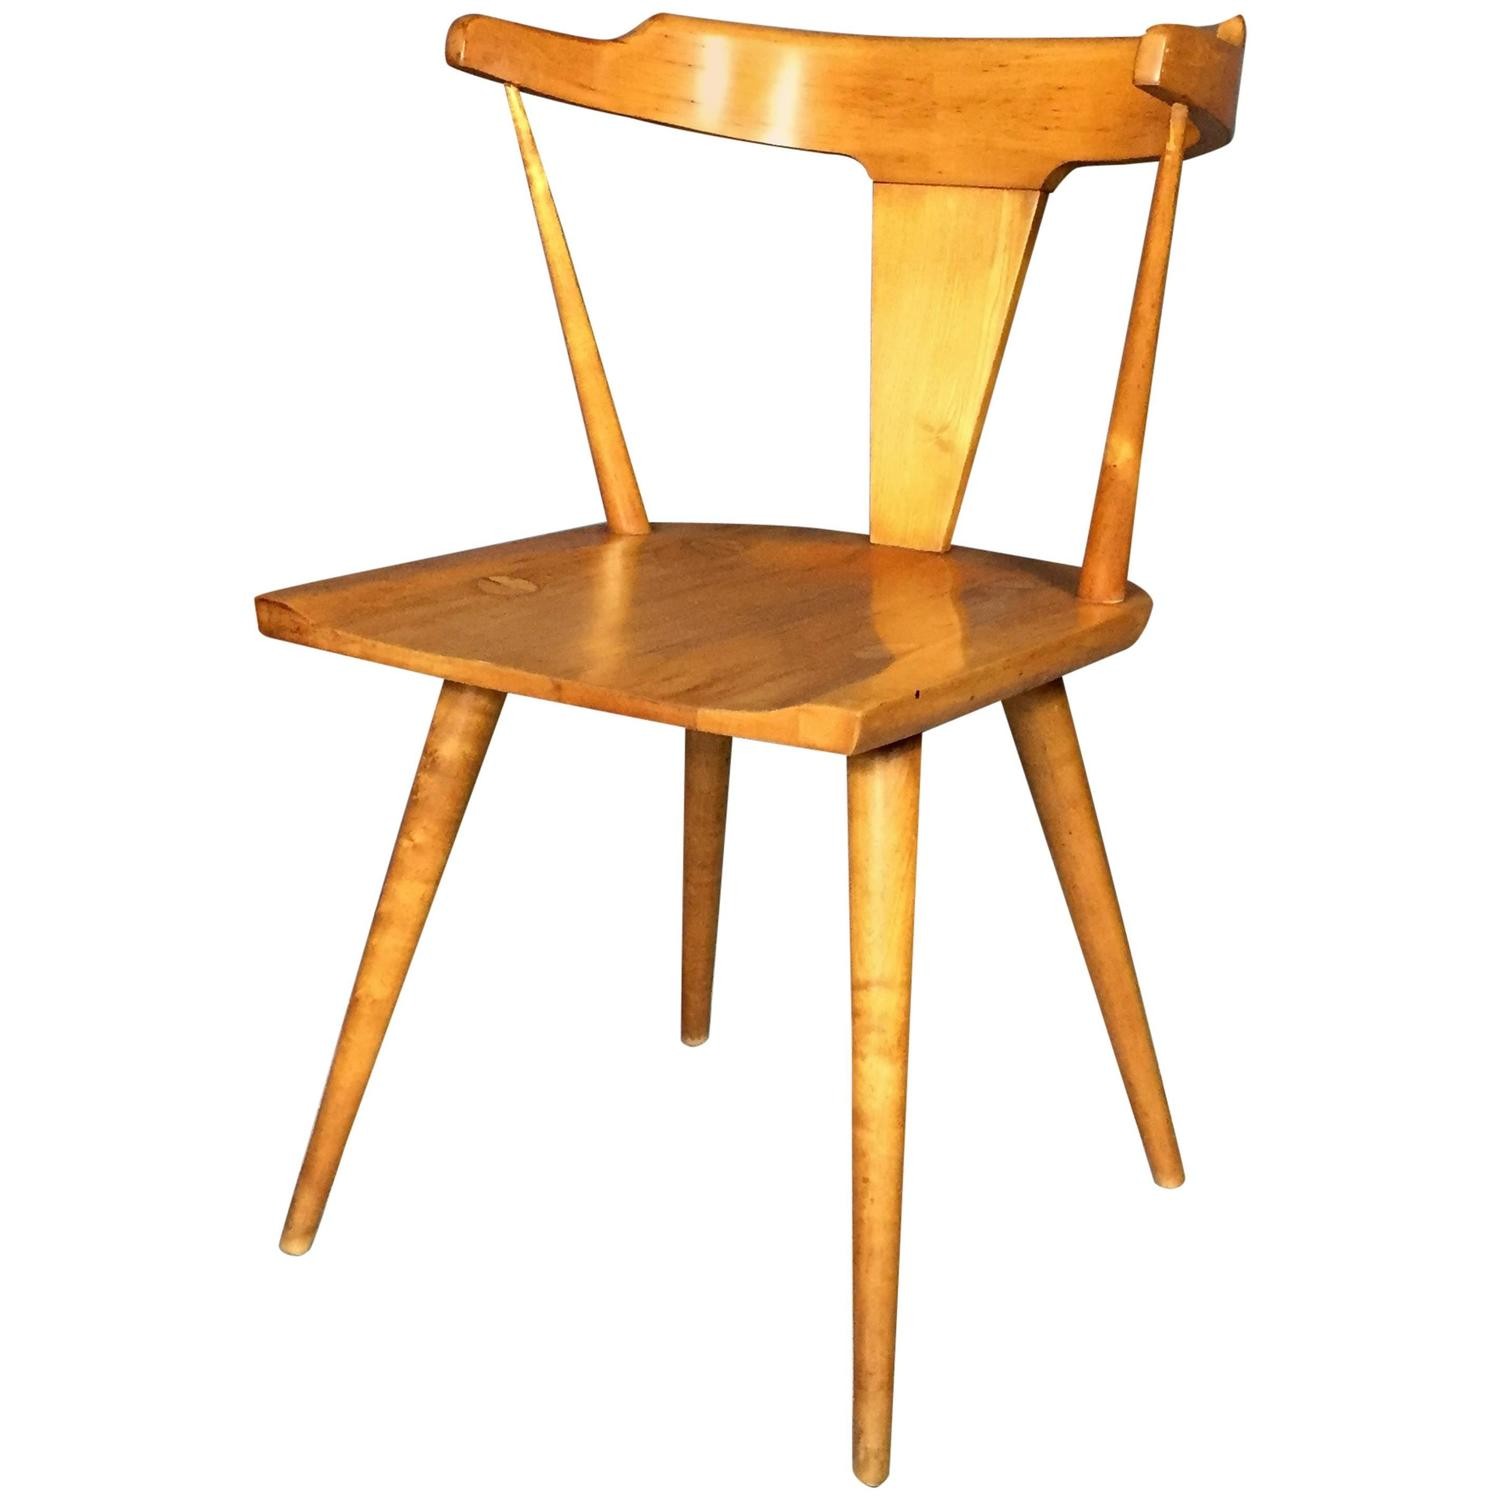 Solid Birch Dining Chair by Paul McCobb for Planner Group